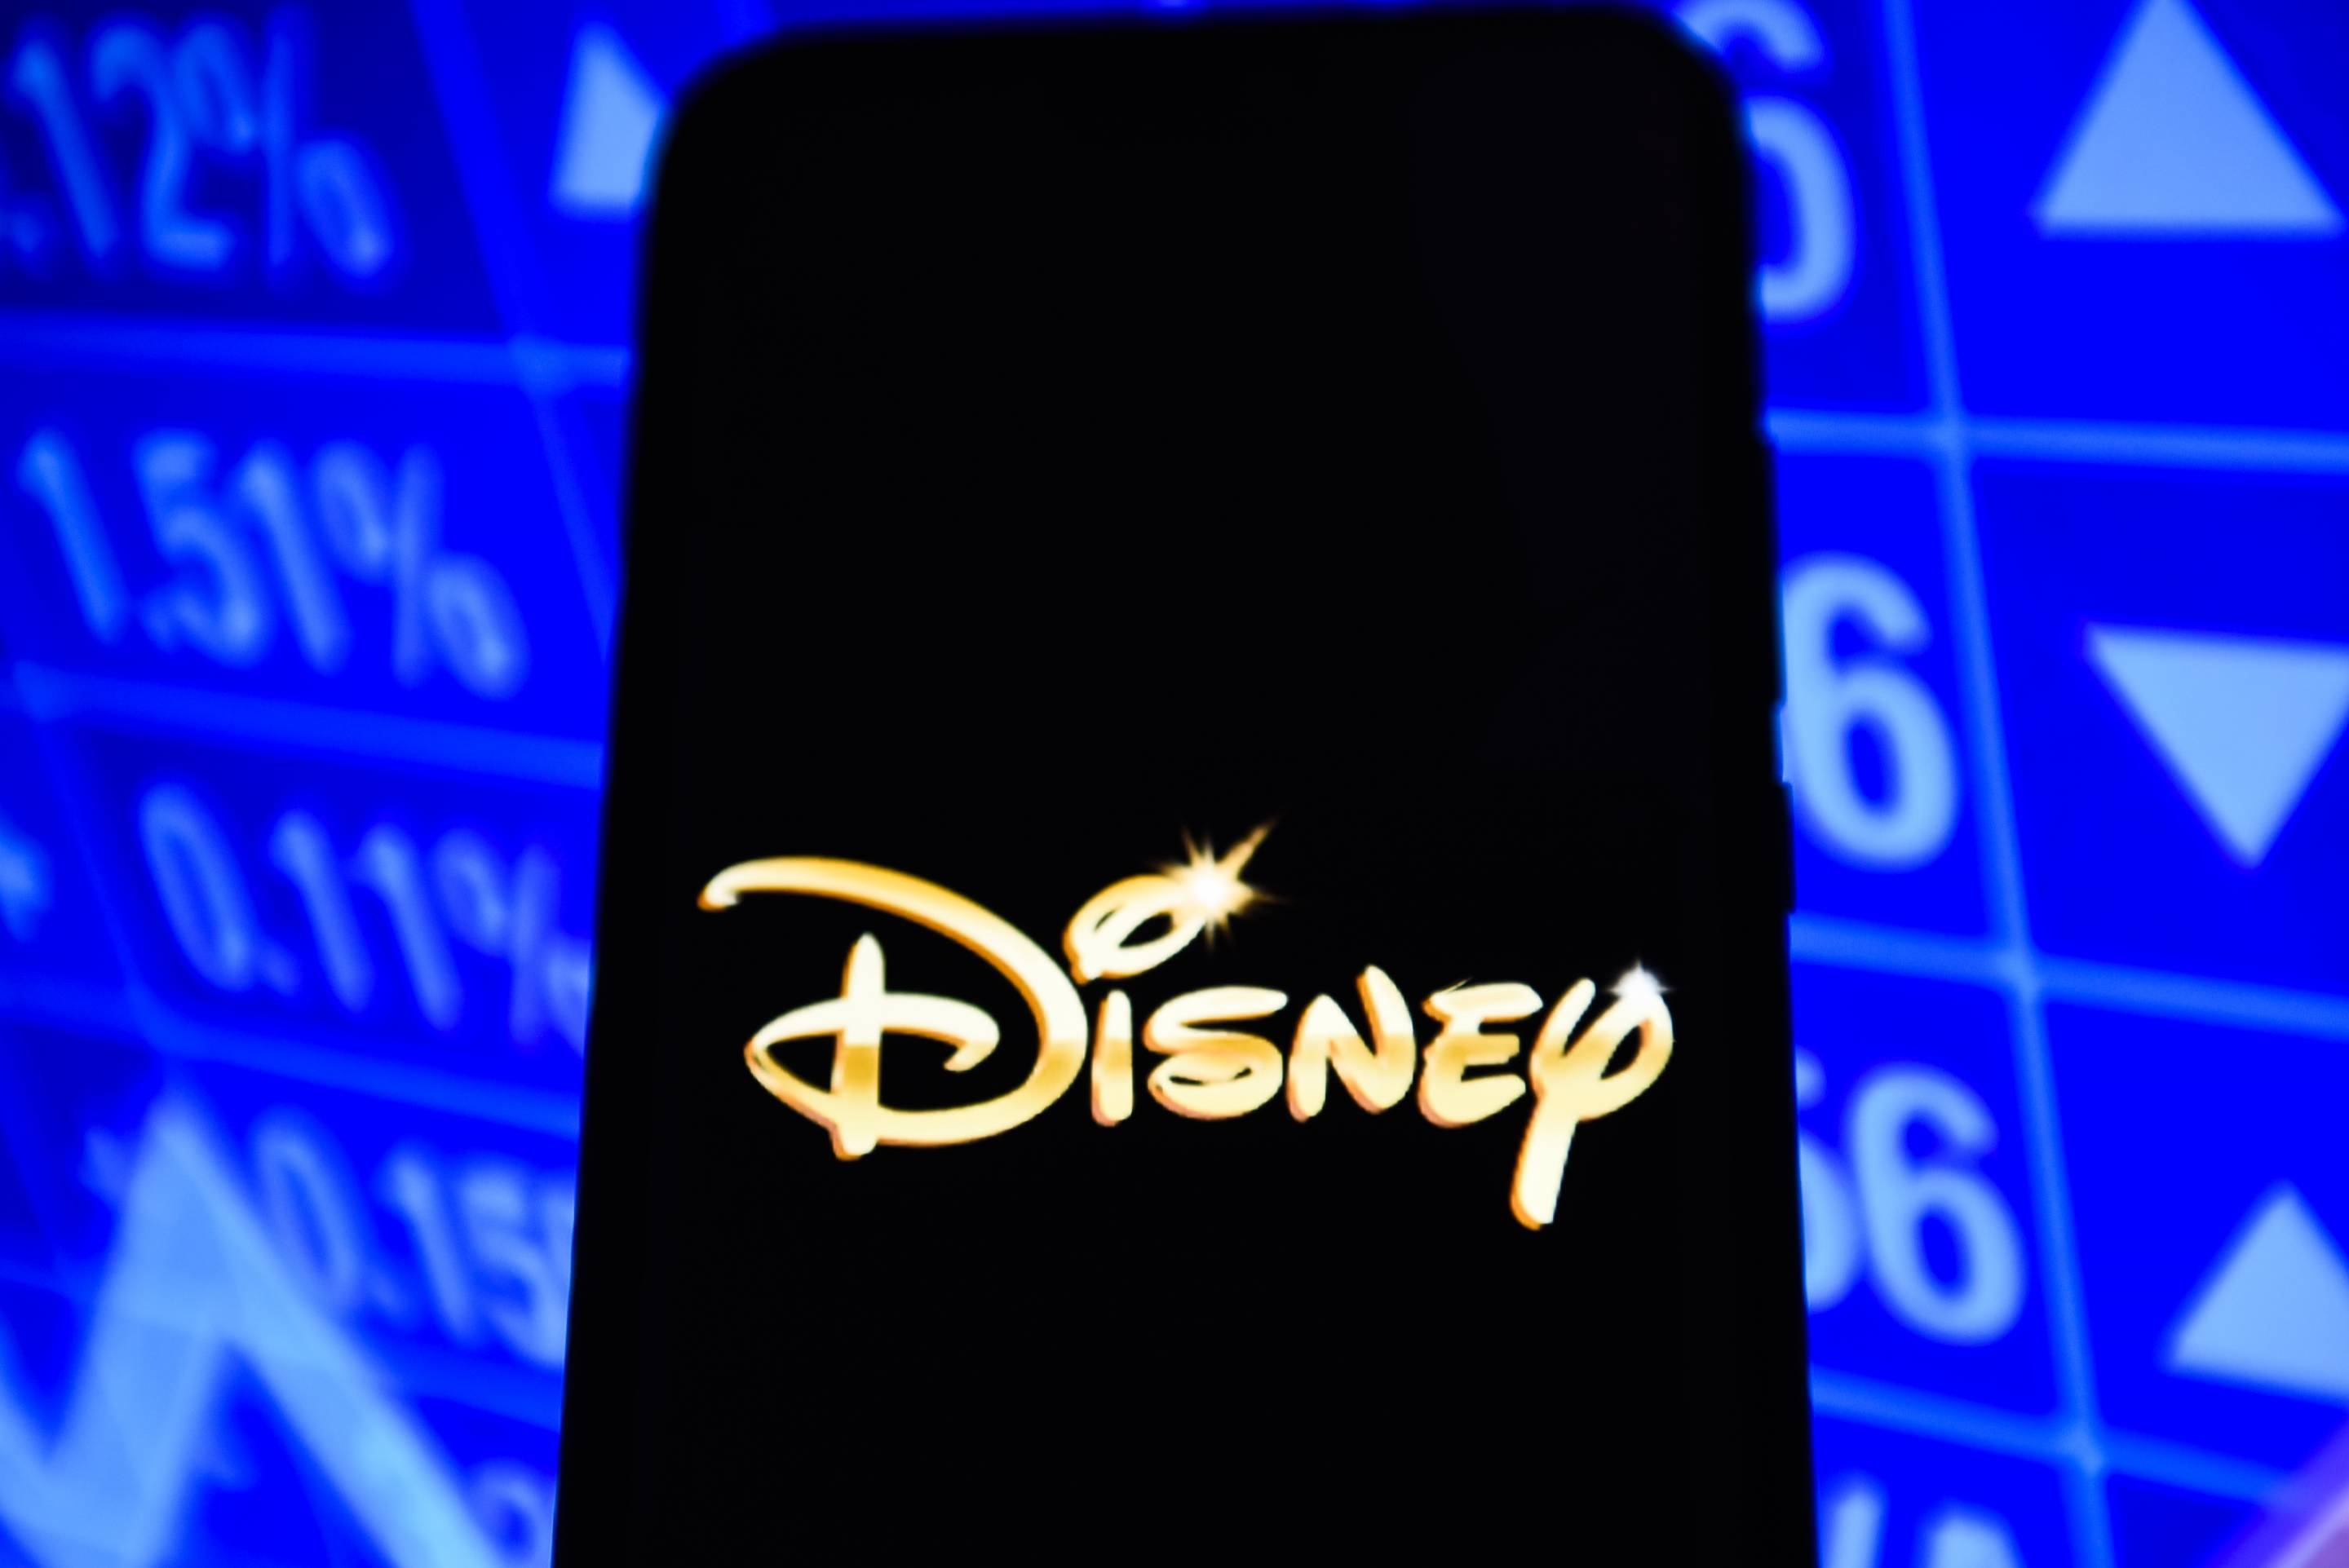 Disney logo is seen on an android mobile phone